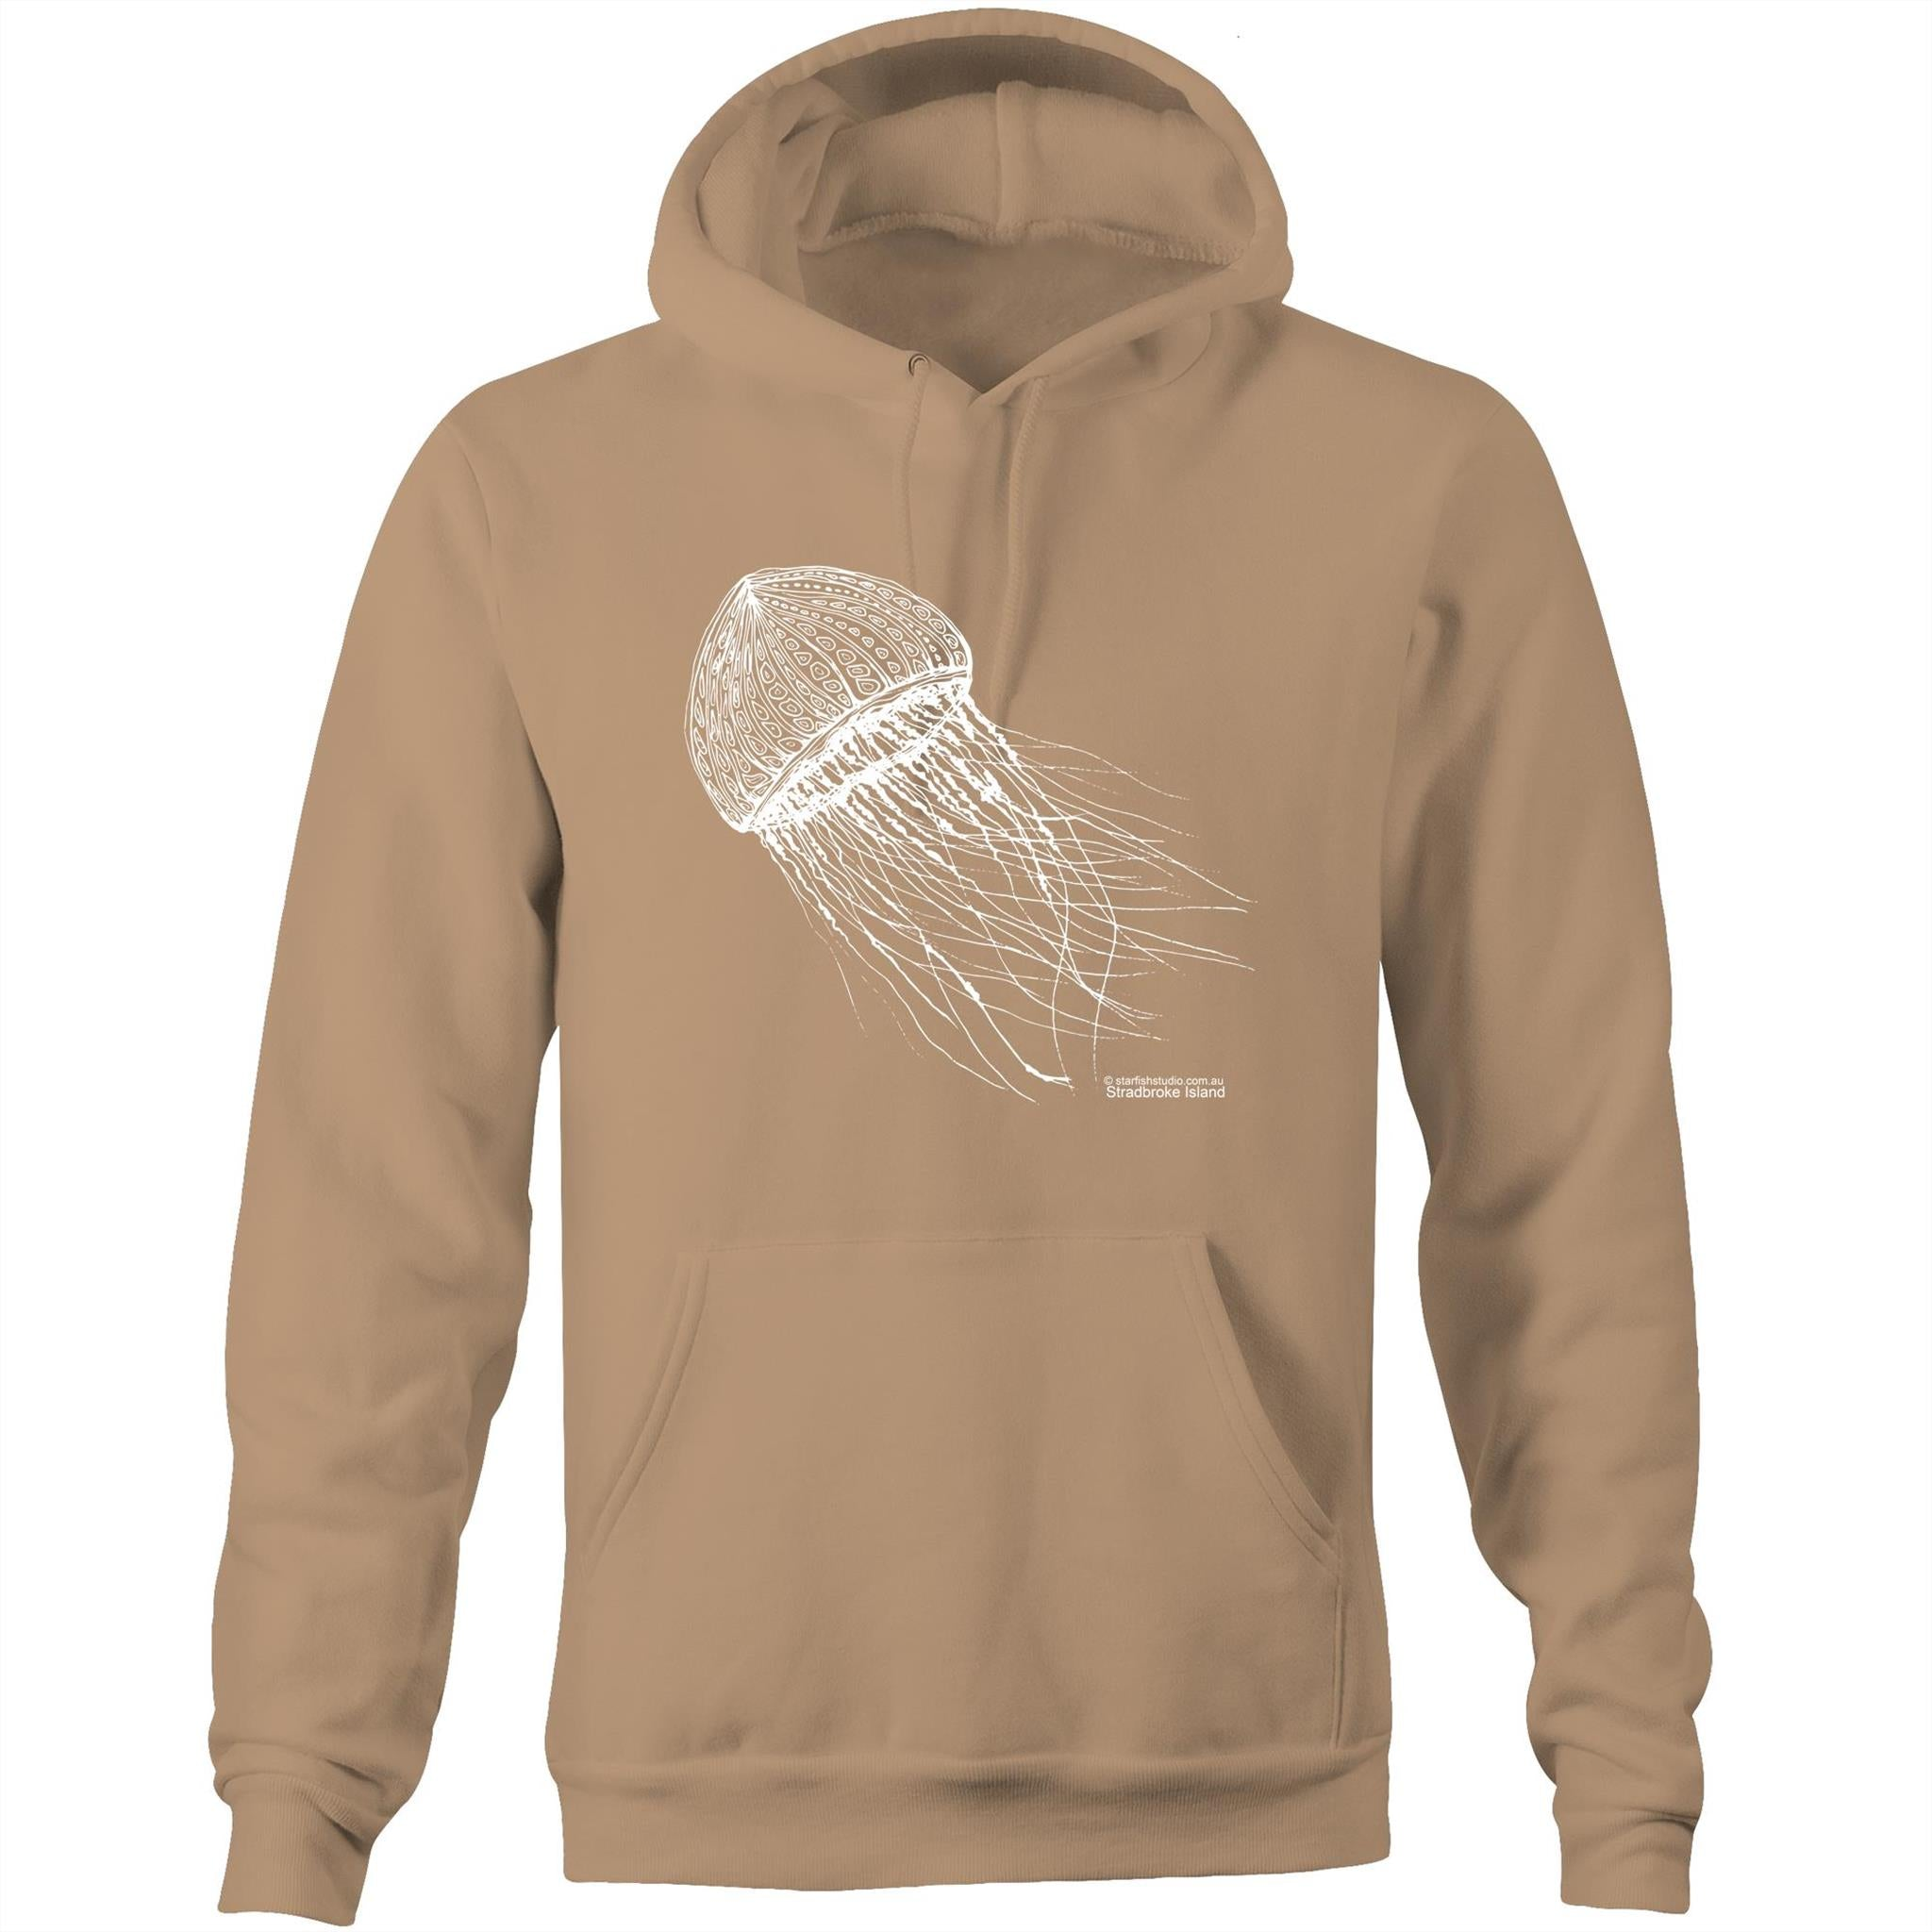 CUSTOM Unisex JELLYFISH - Pocket Sweatshirt with Hood